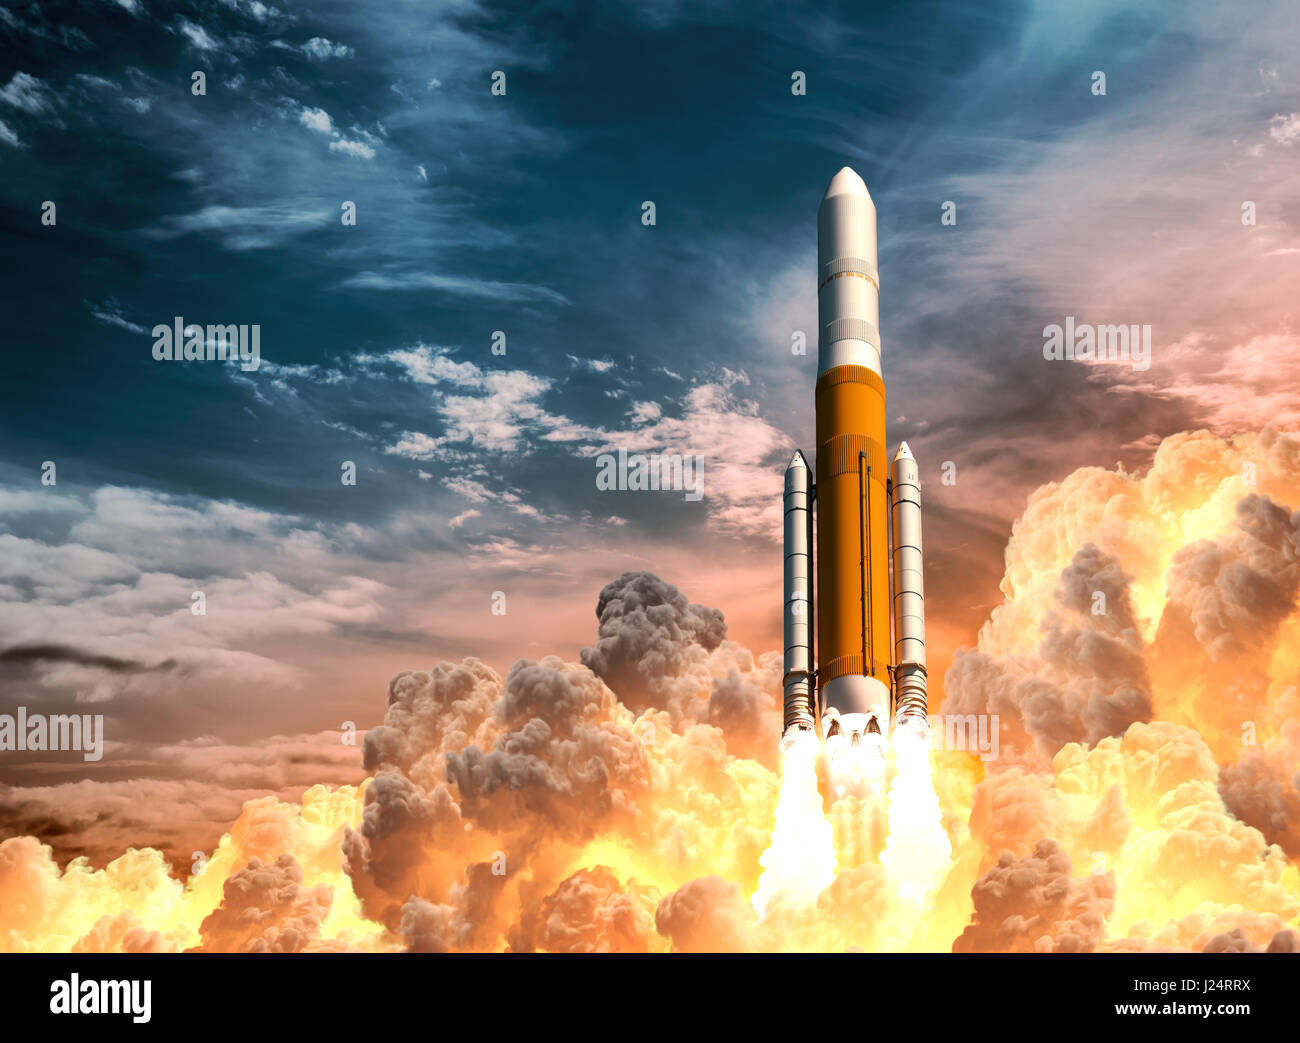 Heavy Rocket Launch On The Background Of Cloudy Sky - Stock Image